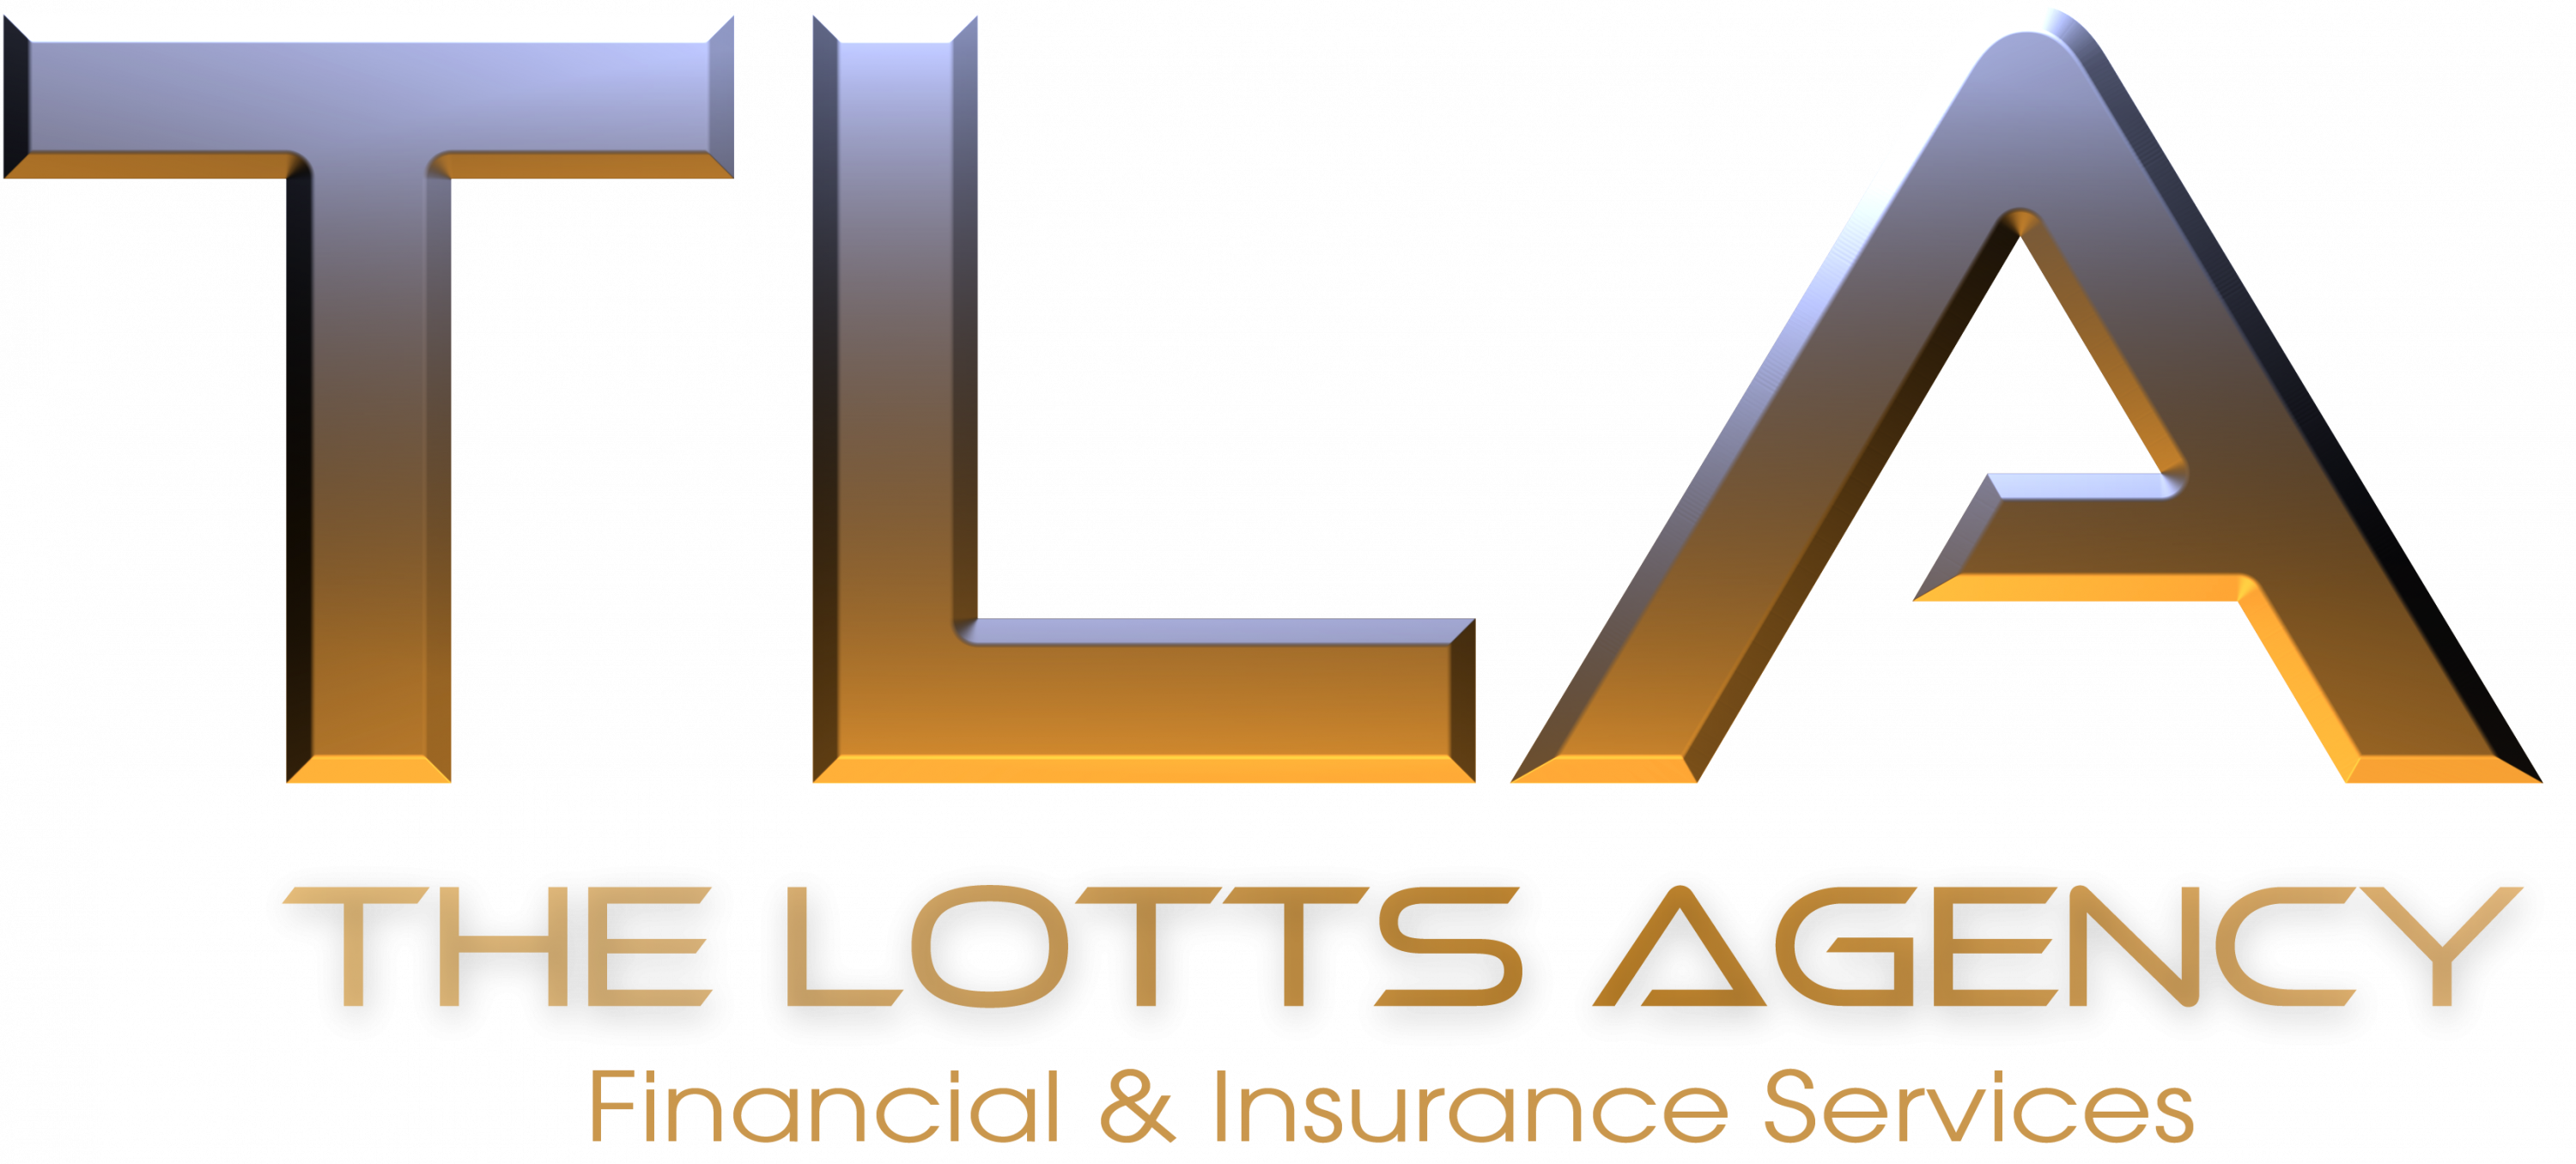 The Lotts Agency Joins the Greater Irvine Chamber's Leaders Circle as Bronze-Level Partner Photo - Click Here to See